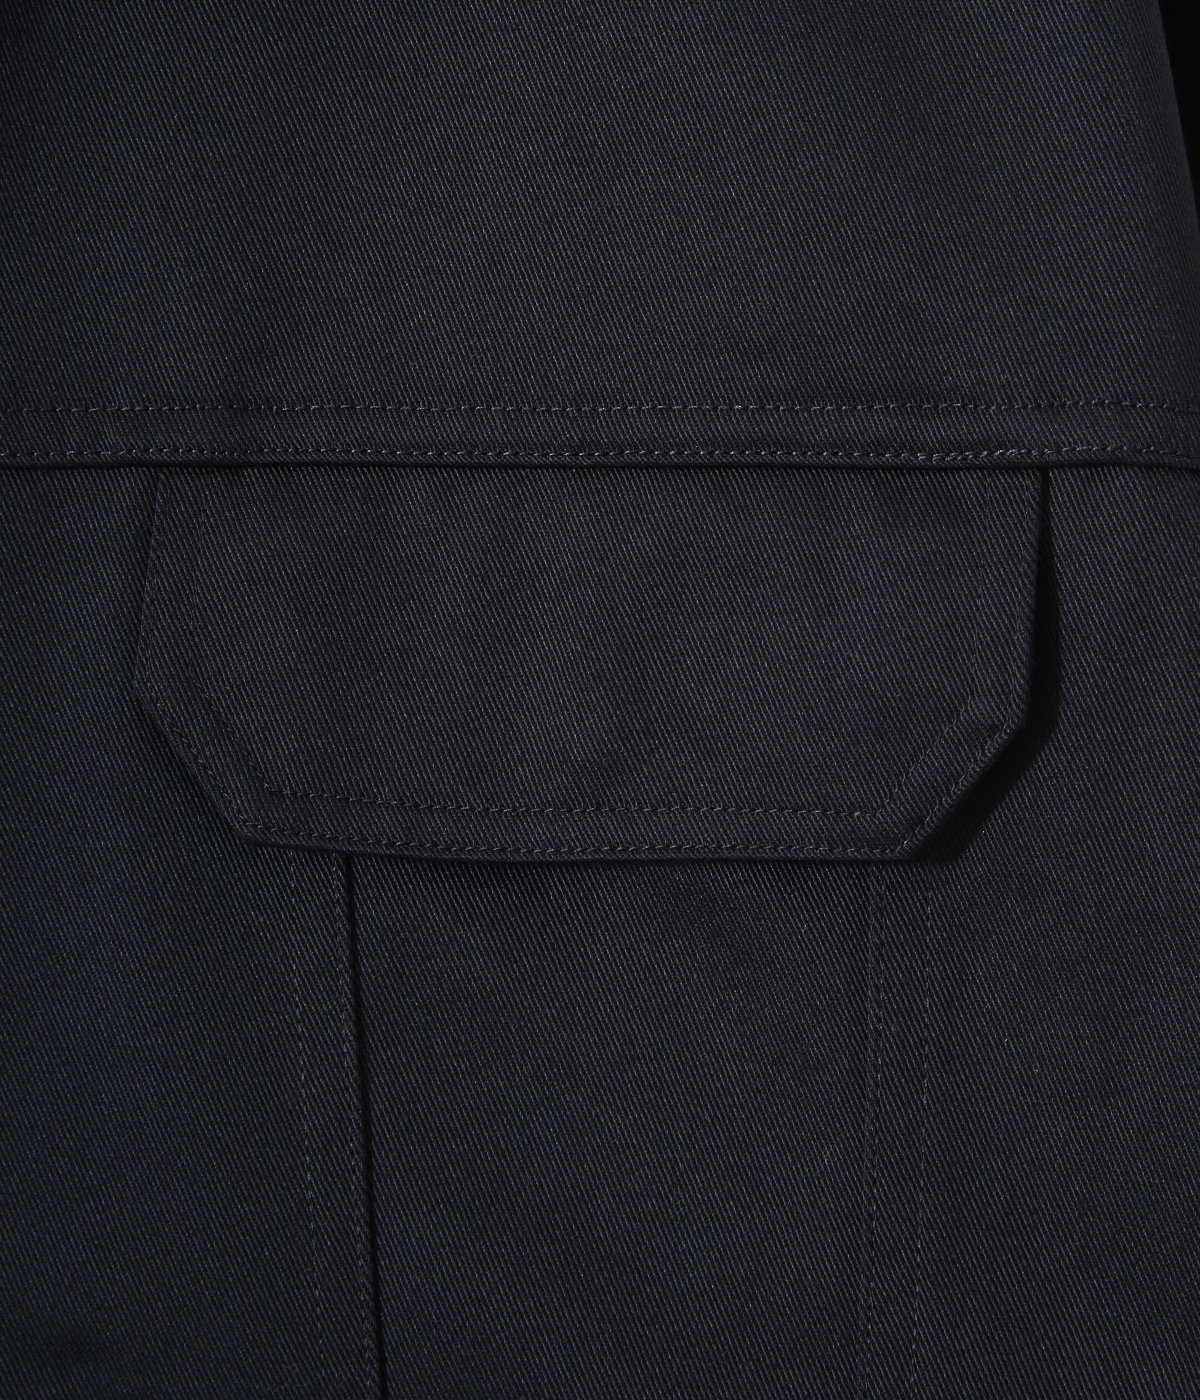 MAGIC STICK x Dickies TYPE 3rd workers jacket